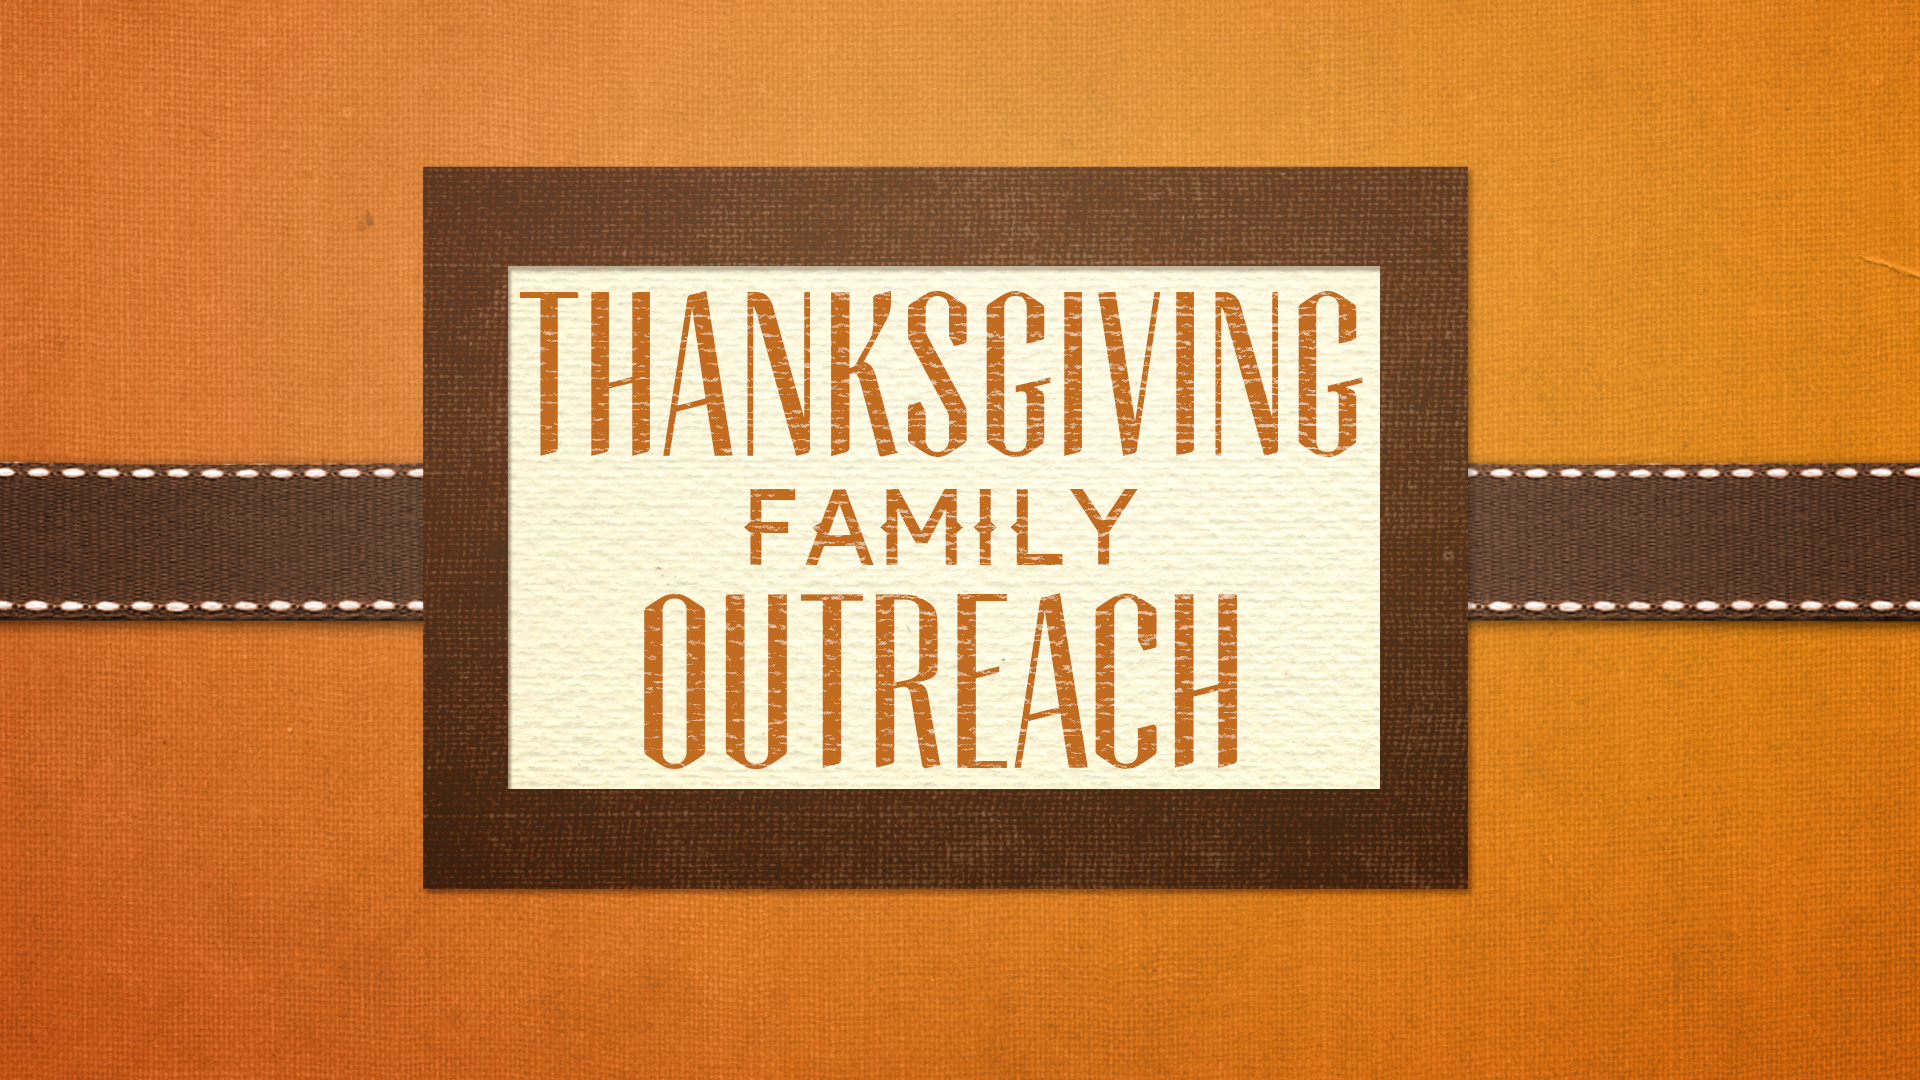 Thankksgiving_Outreach_Banner.jpg